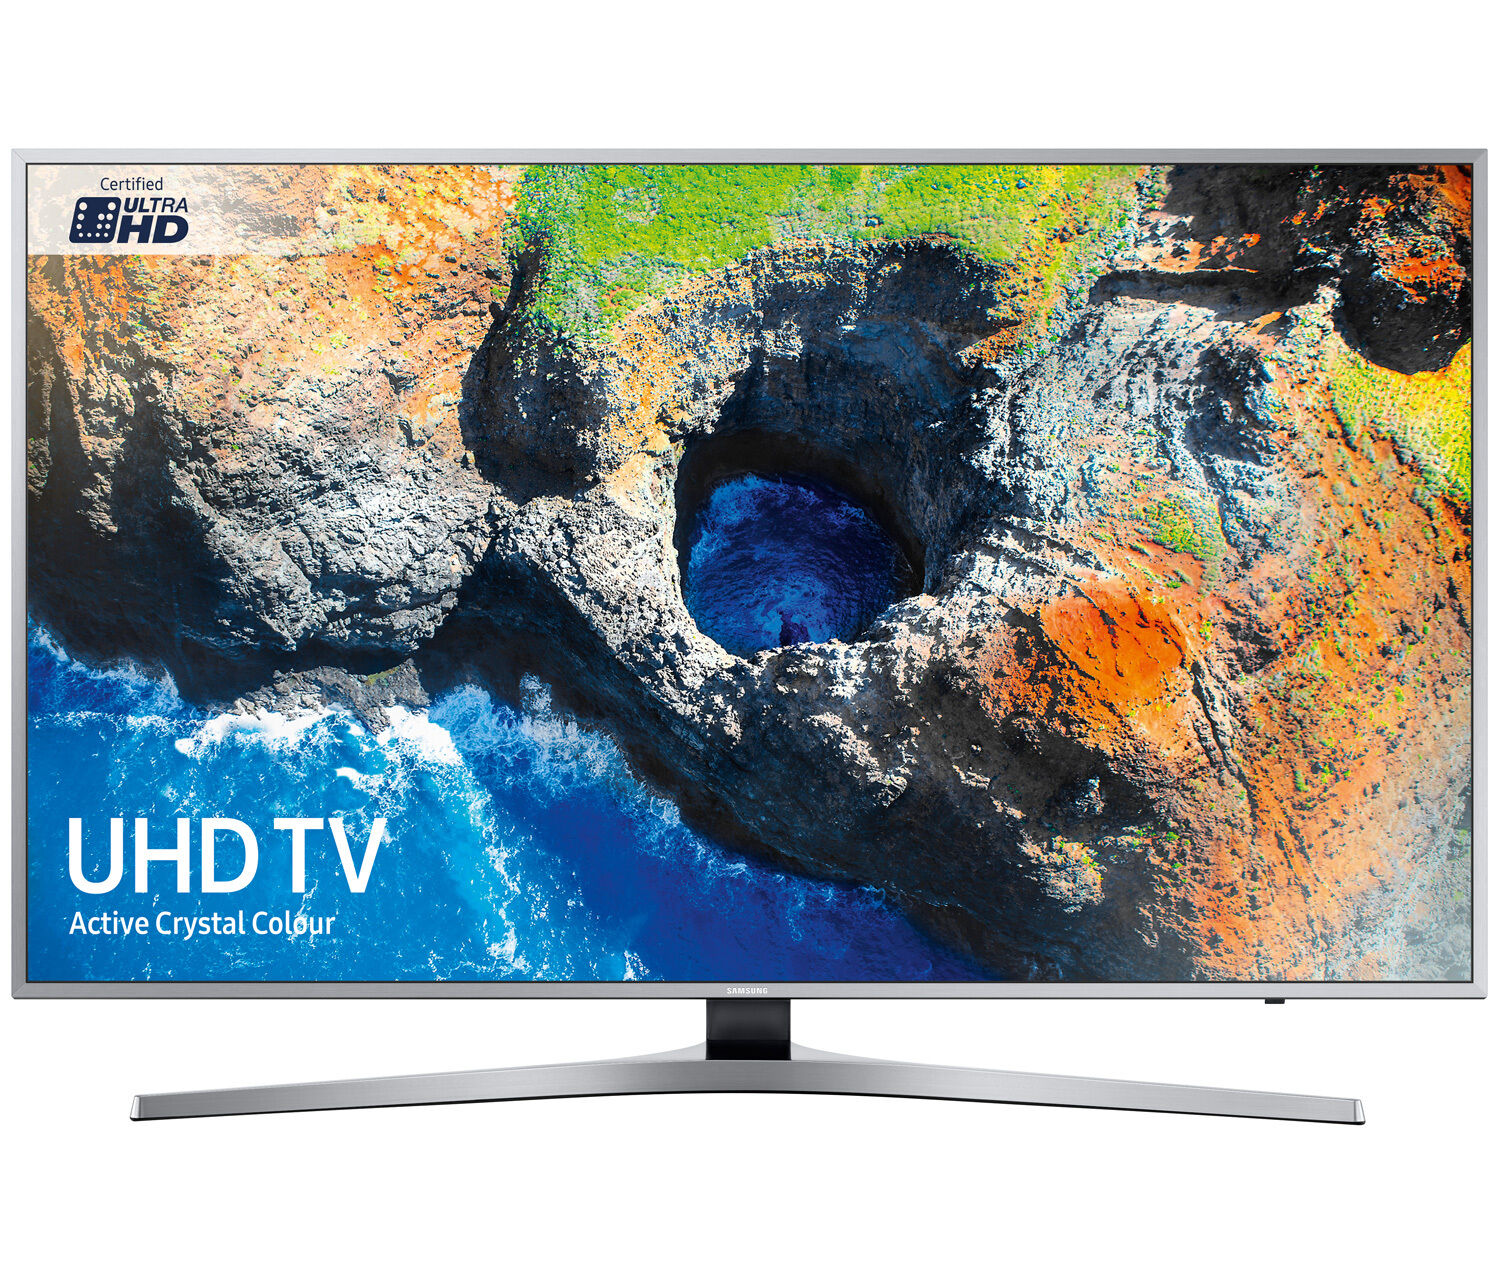 SAMSUNG UE40MU6400 40 inch 4K Ultra HD Smart HDR LED TV TVPlus